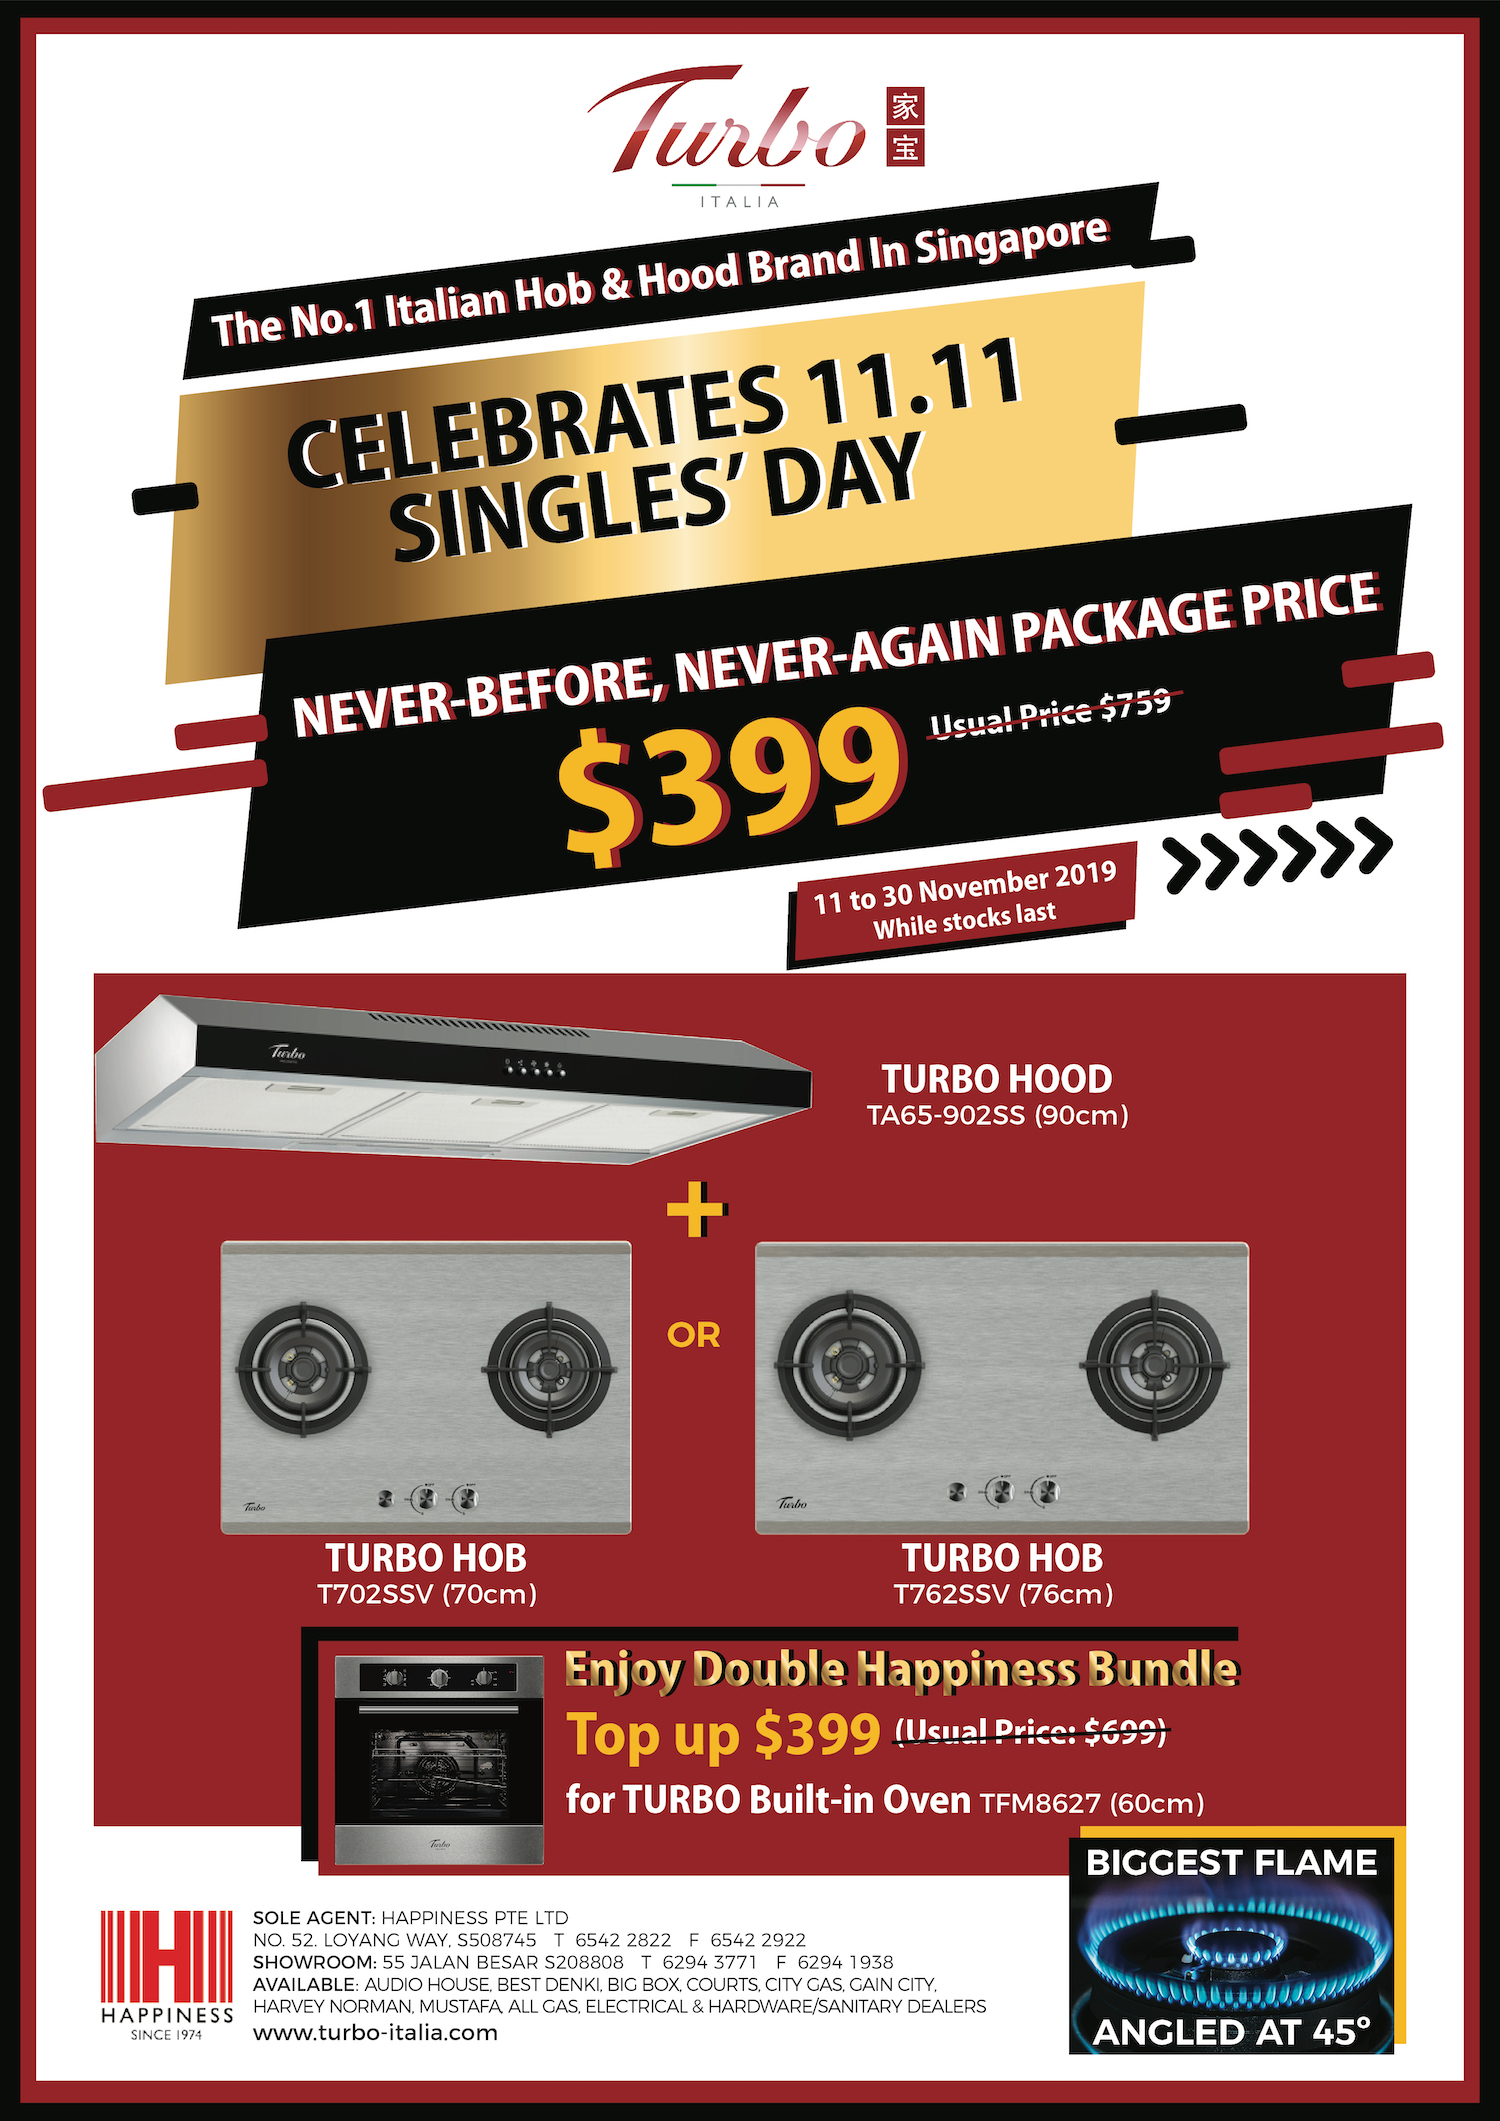 TURBO Singapore Singles' Day 11.11 First-Ever Nationwide Sales Promotion 11-30 Nov 2019 | Why Not Deals & Promotions